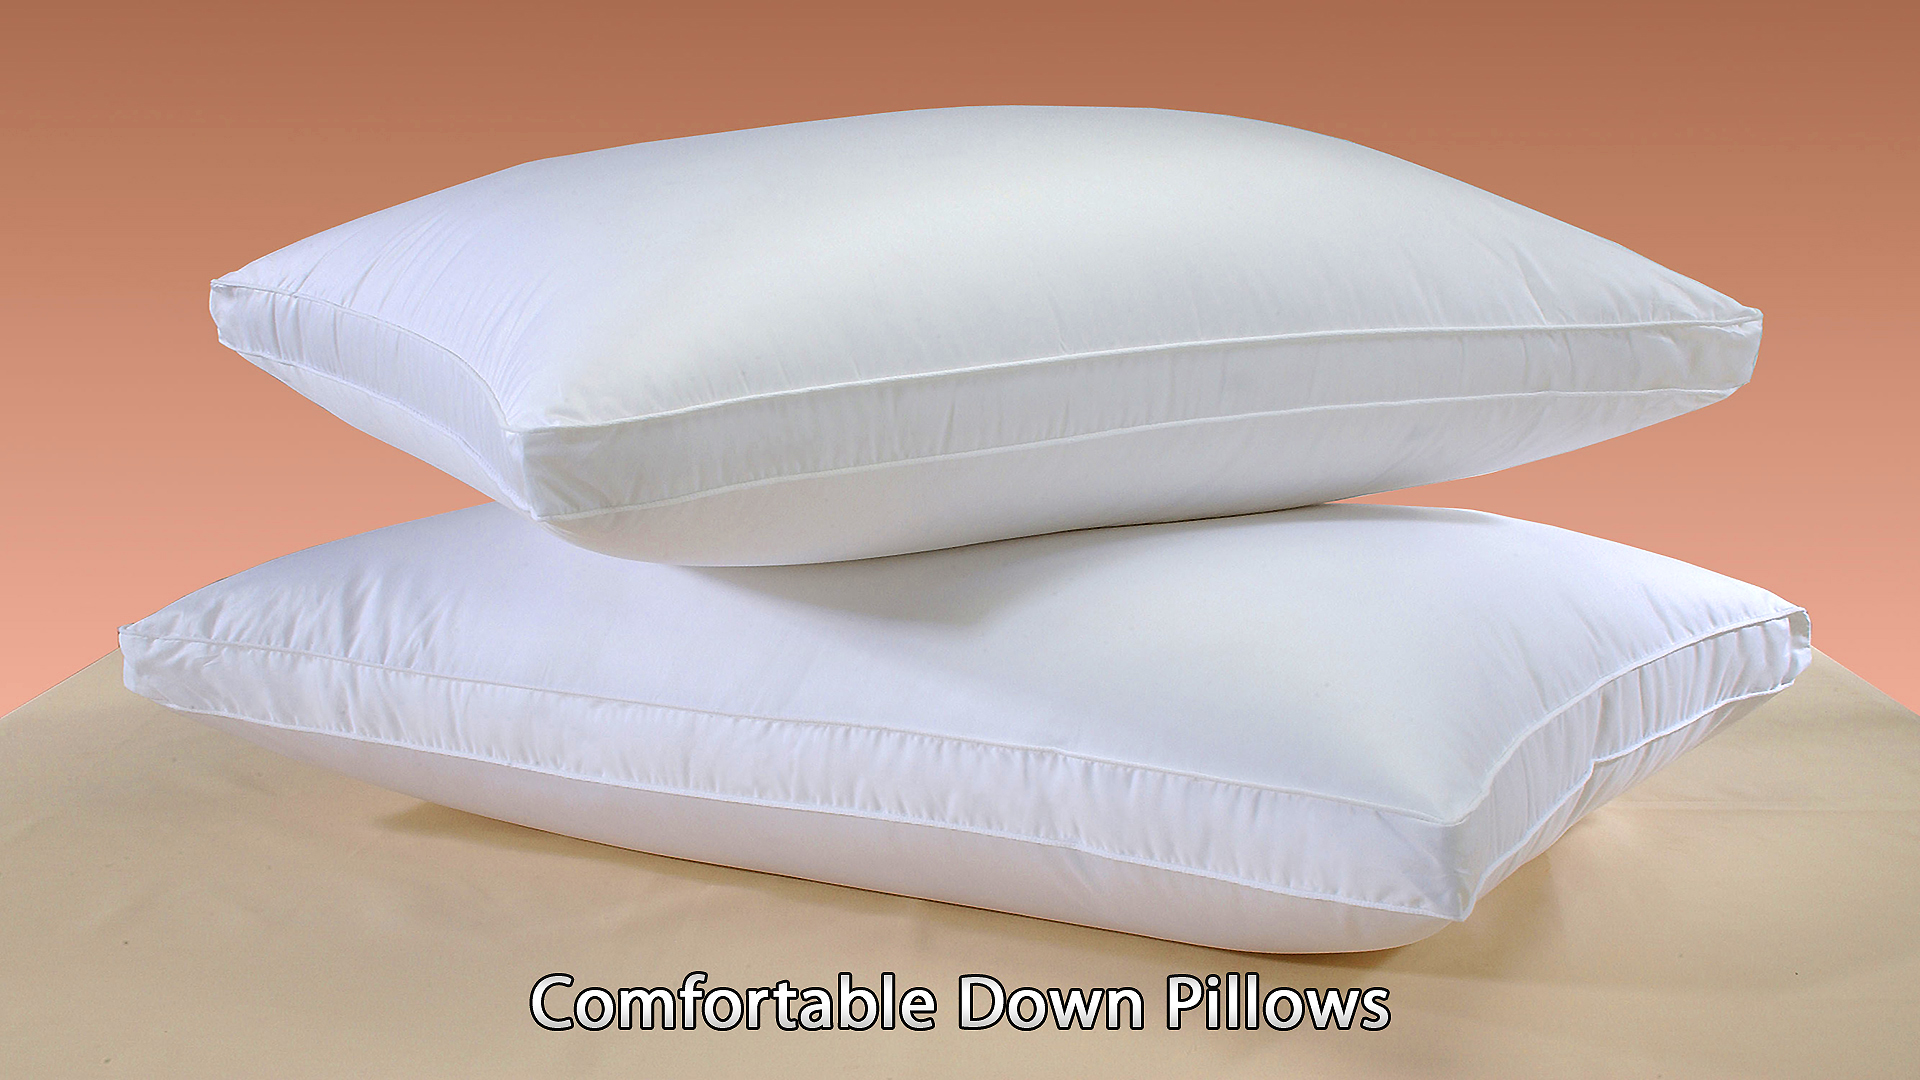 Comfortable Down Pillows